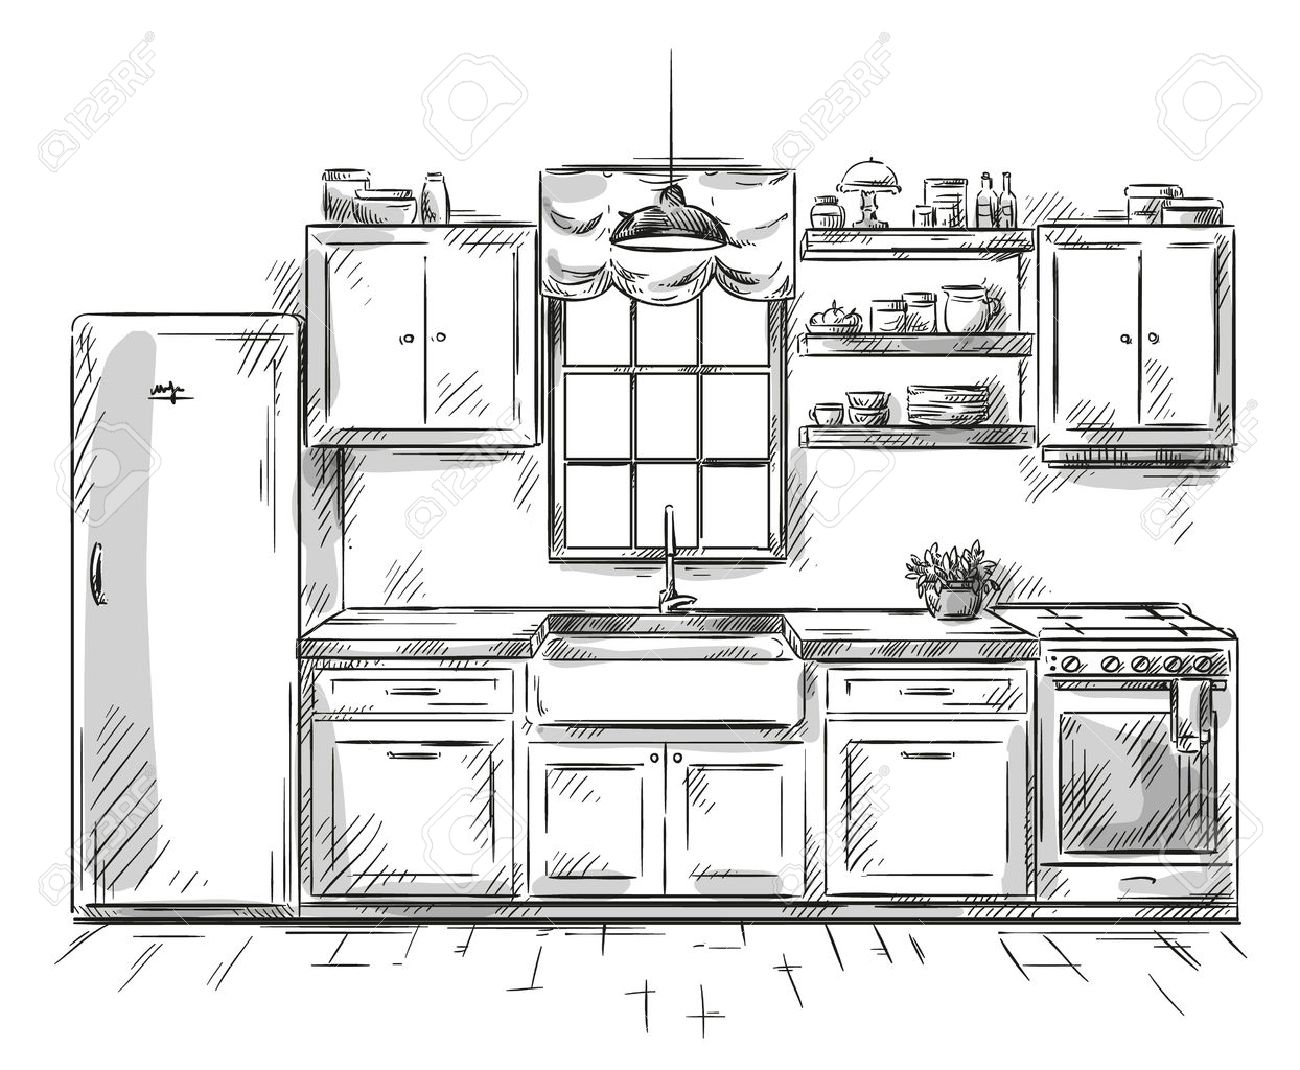 Disegna Cucina 3d. Latest Disegno Cucina D Realt Virtuale With ...